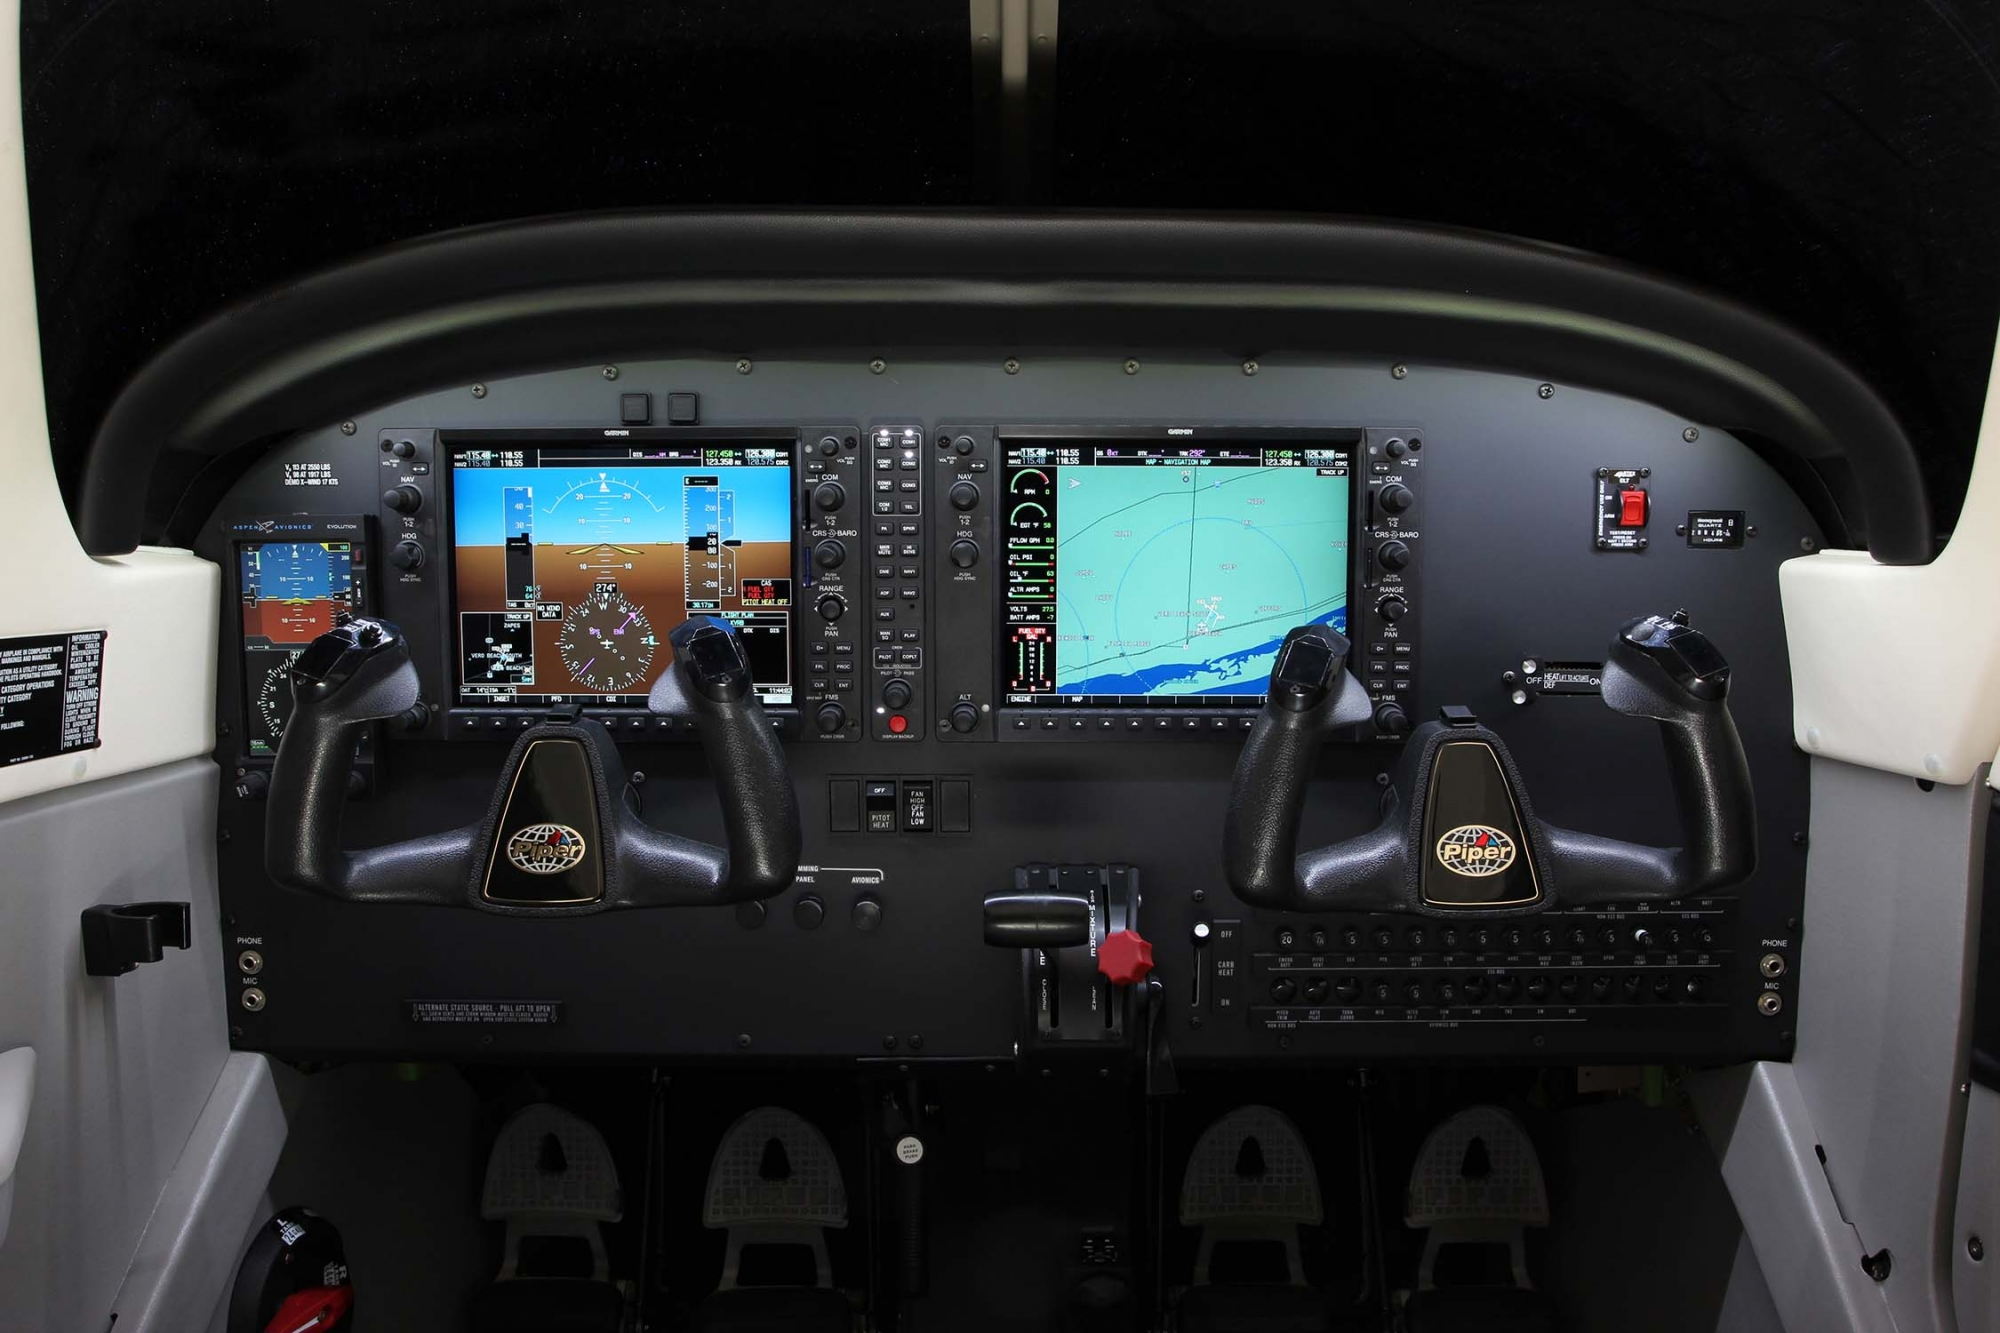 Atp Flight School Places Second Order For 100 Archer Txs Piper Aircraft